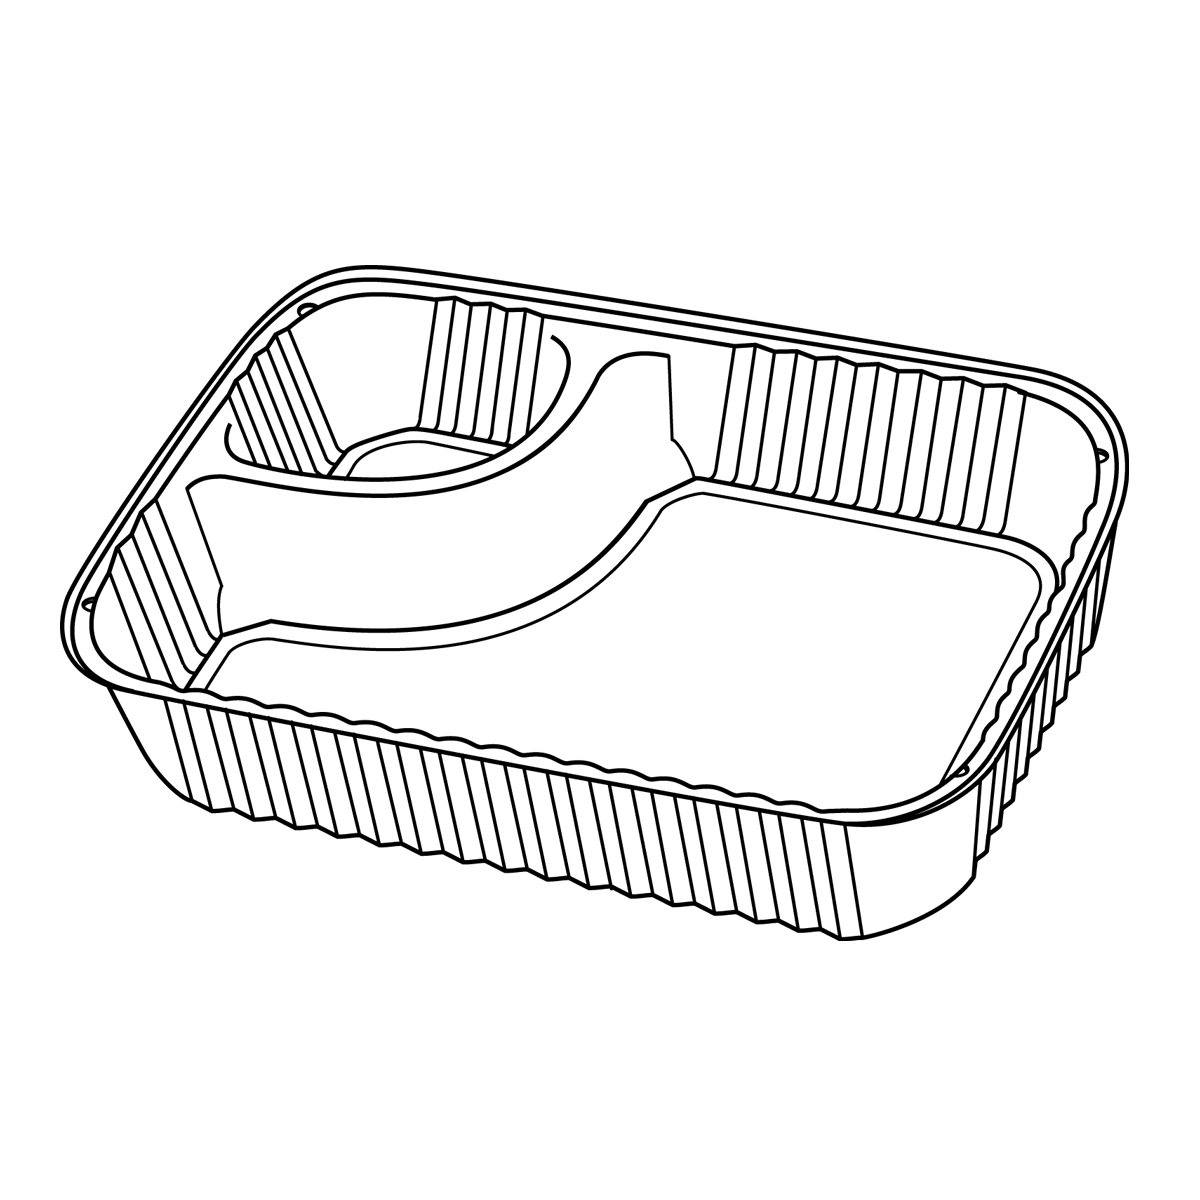 meridian food service food trays Lincoln Wiring Diagrams 5280420